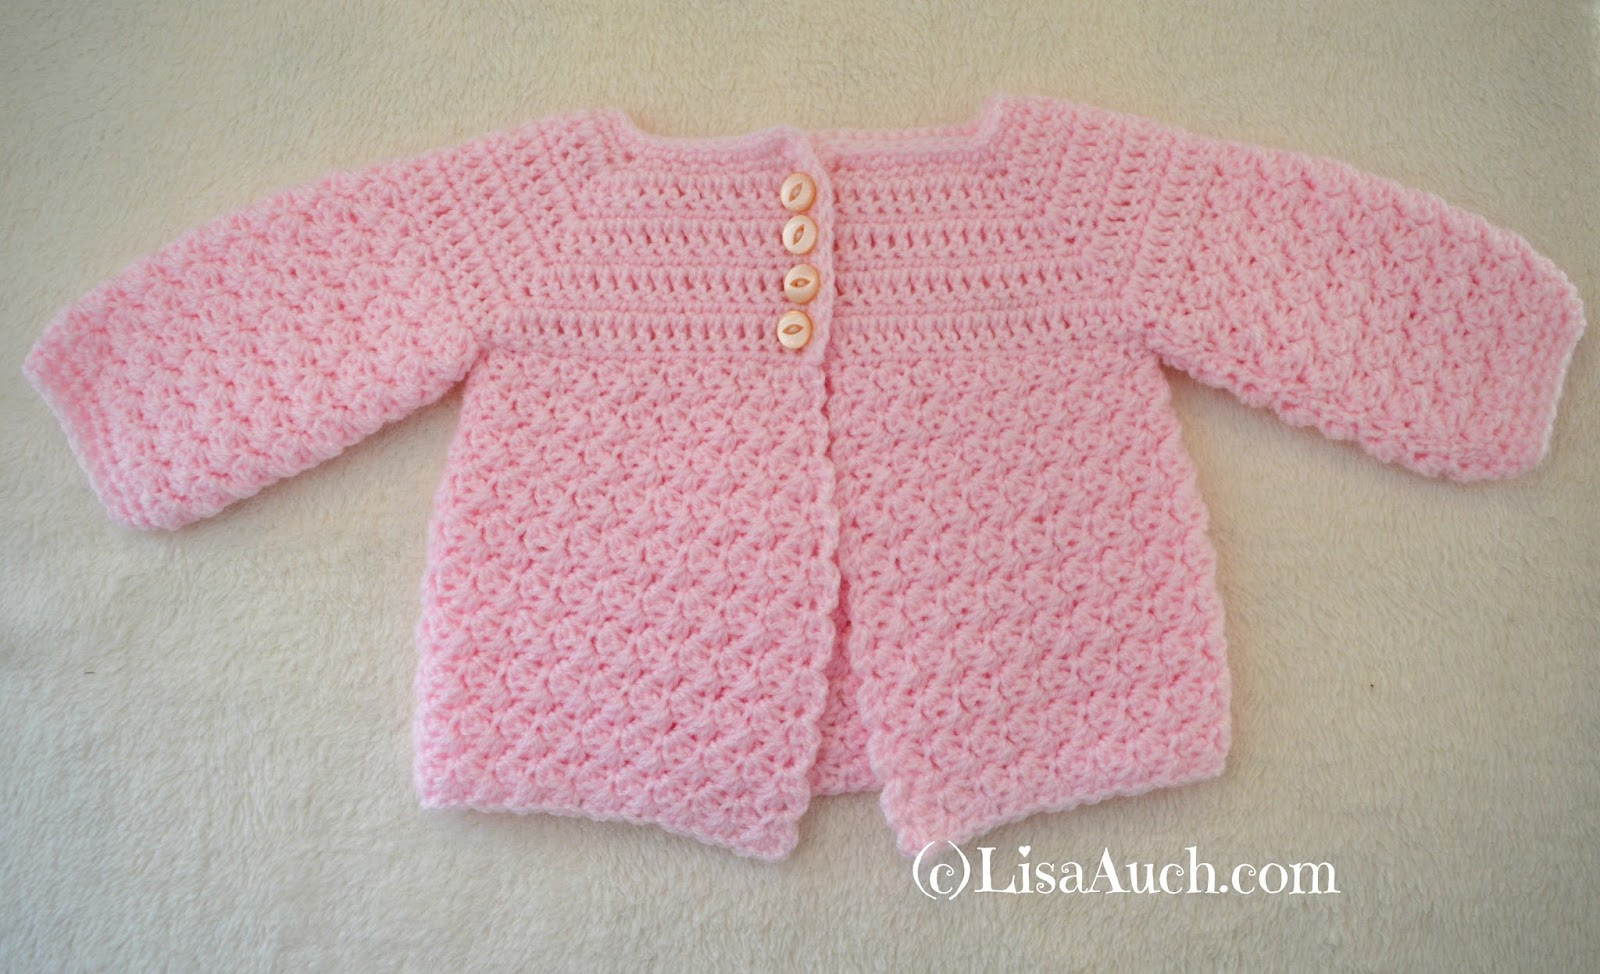 Crochet Baby Cardigan Awesome Crochet Baby Cardigan Easy Free Pattern Of Amazing 49 Pics Crochet Baby Cardigan